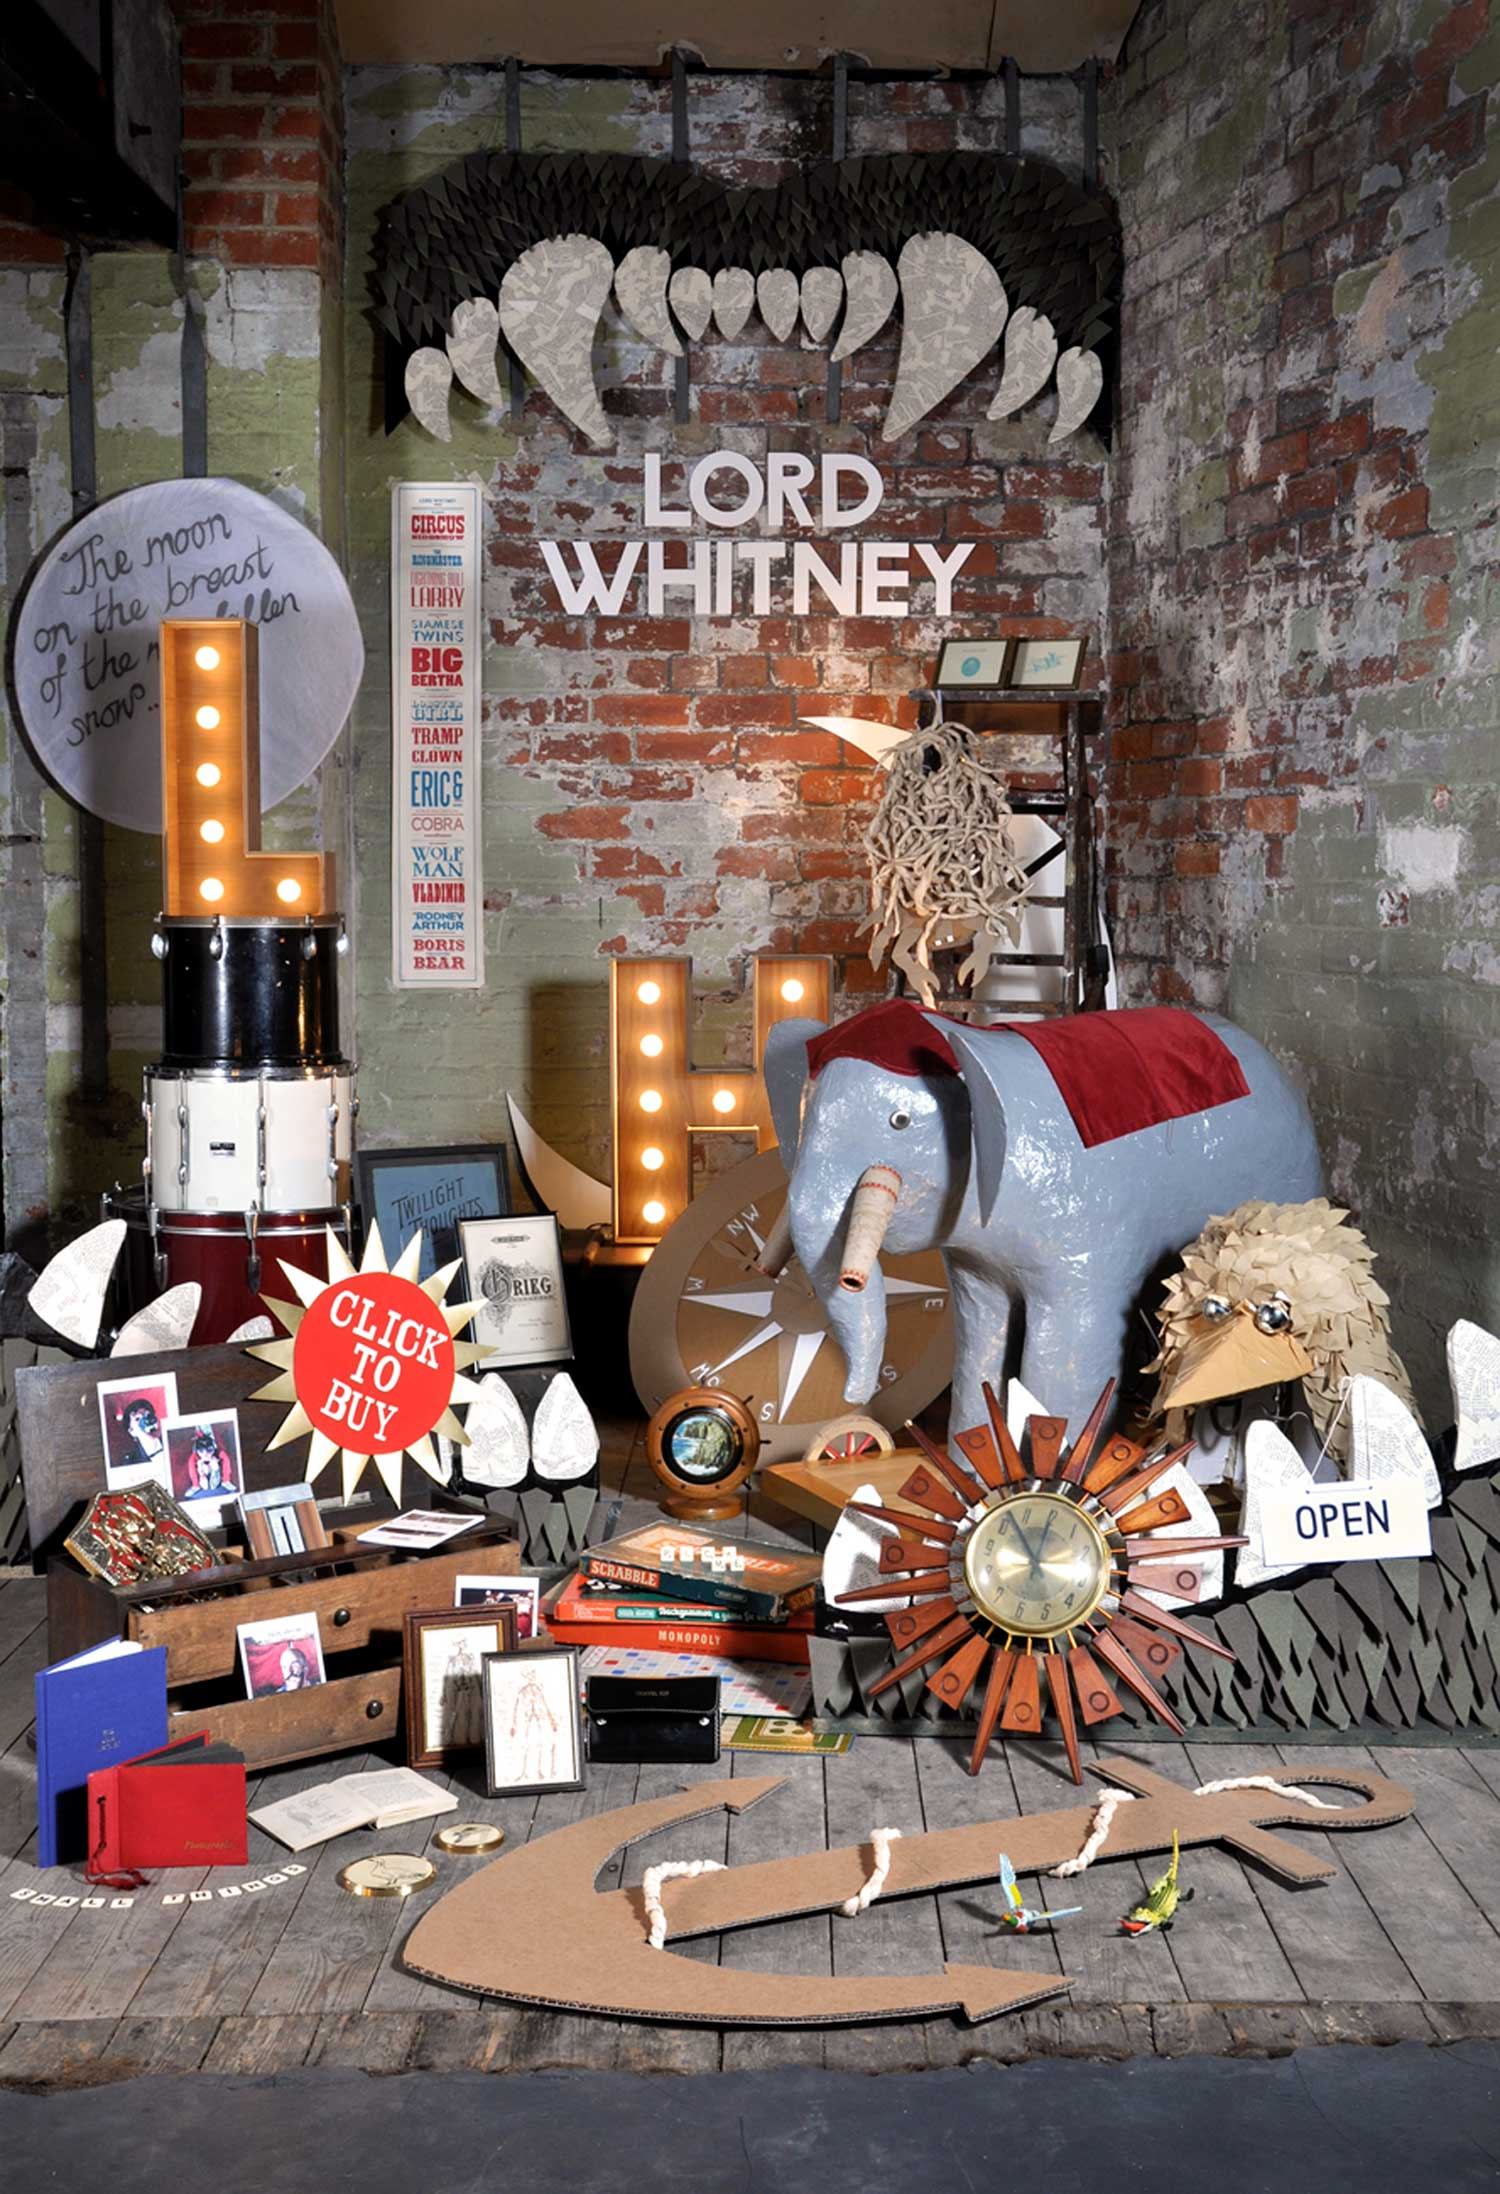 Lord Whitney Set Design, Art Direction and Prop Making | http://tourism-and-hotels.info/2013/10/16/lord-whitney/